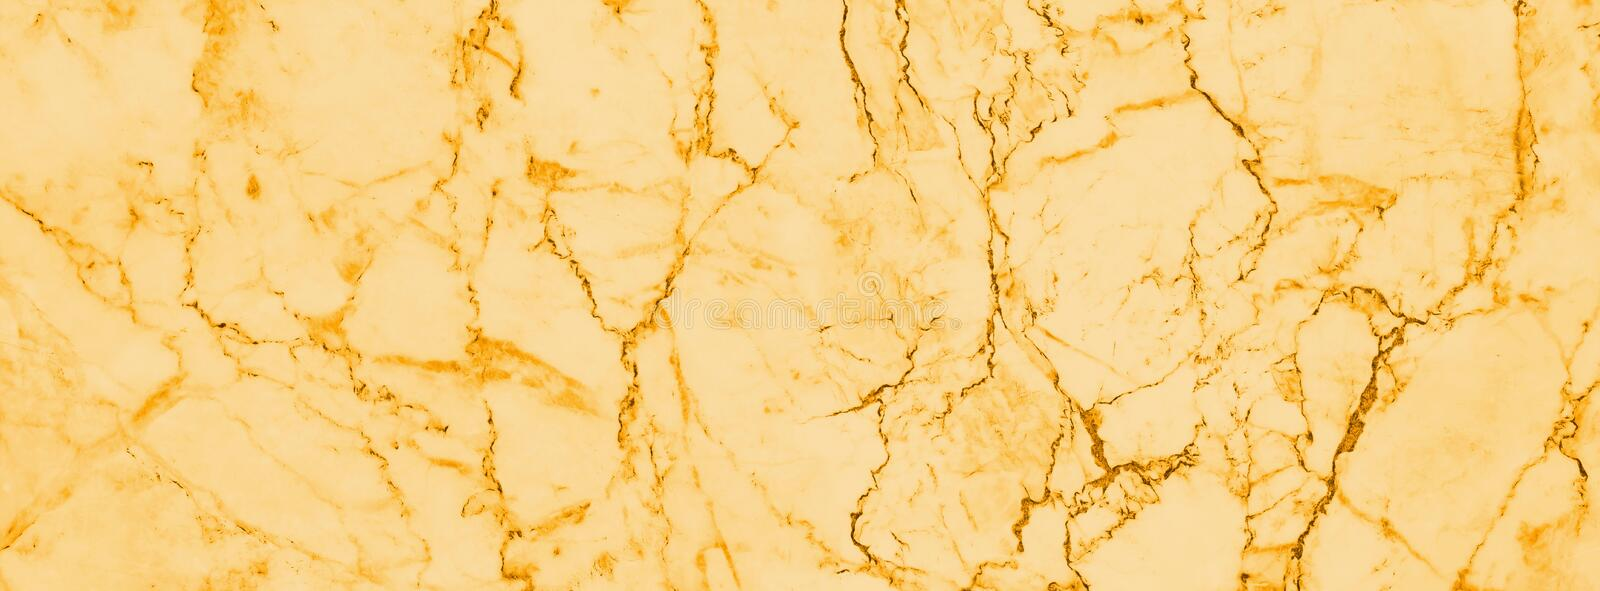 Gold background pattern floor stone tile slab nature, Abstract material wall vector illustration